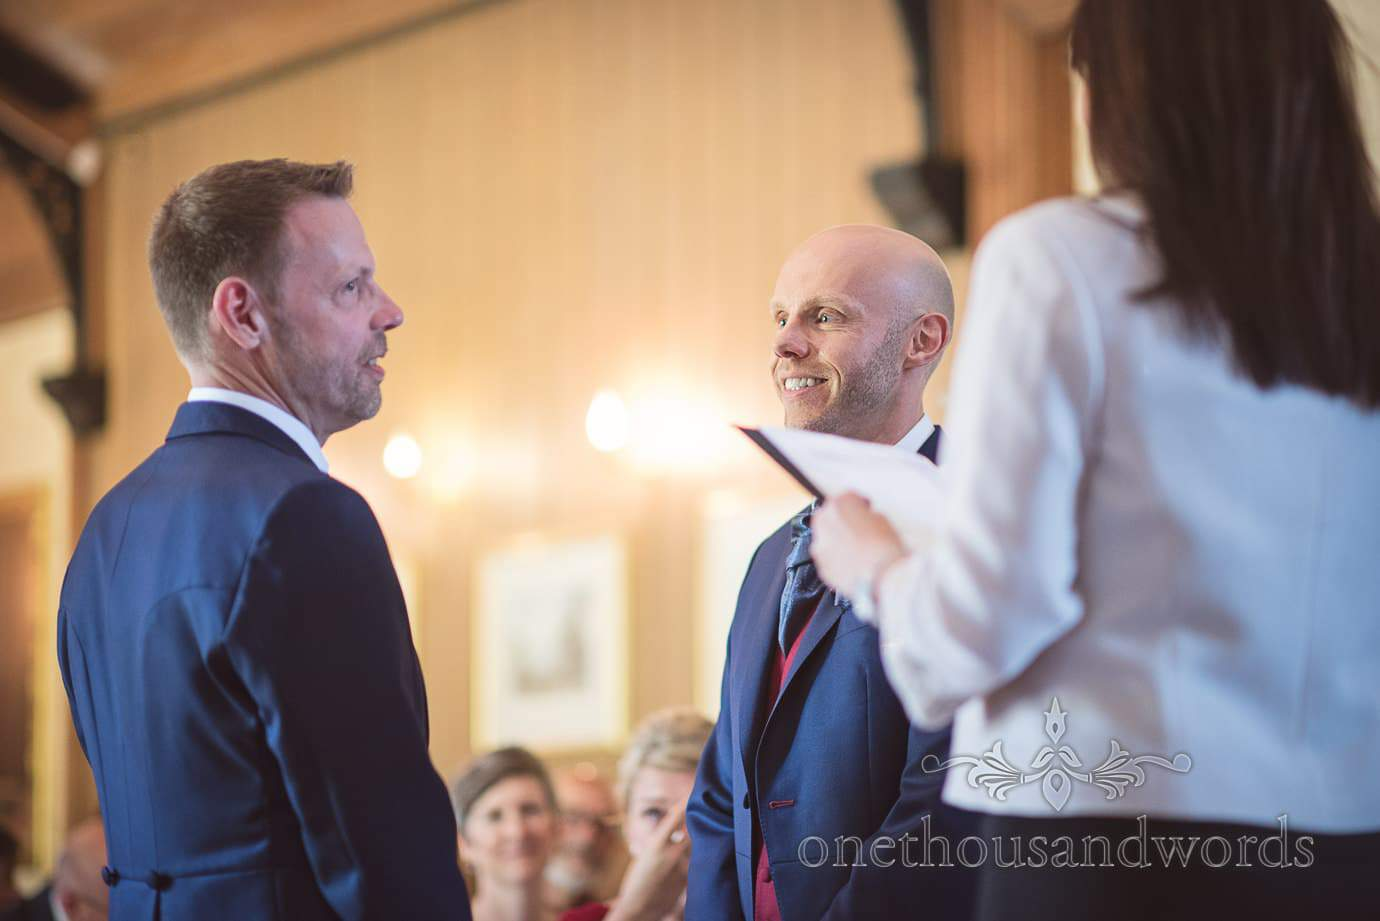 Groom in blue suit smiles at partner during gay wedding ceremony vows